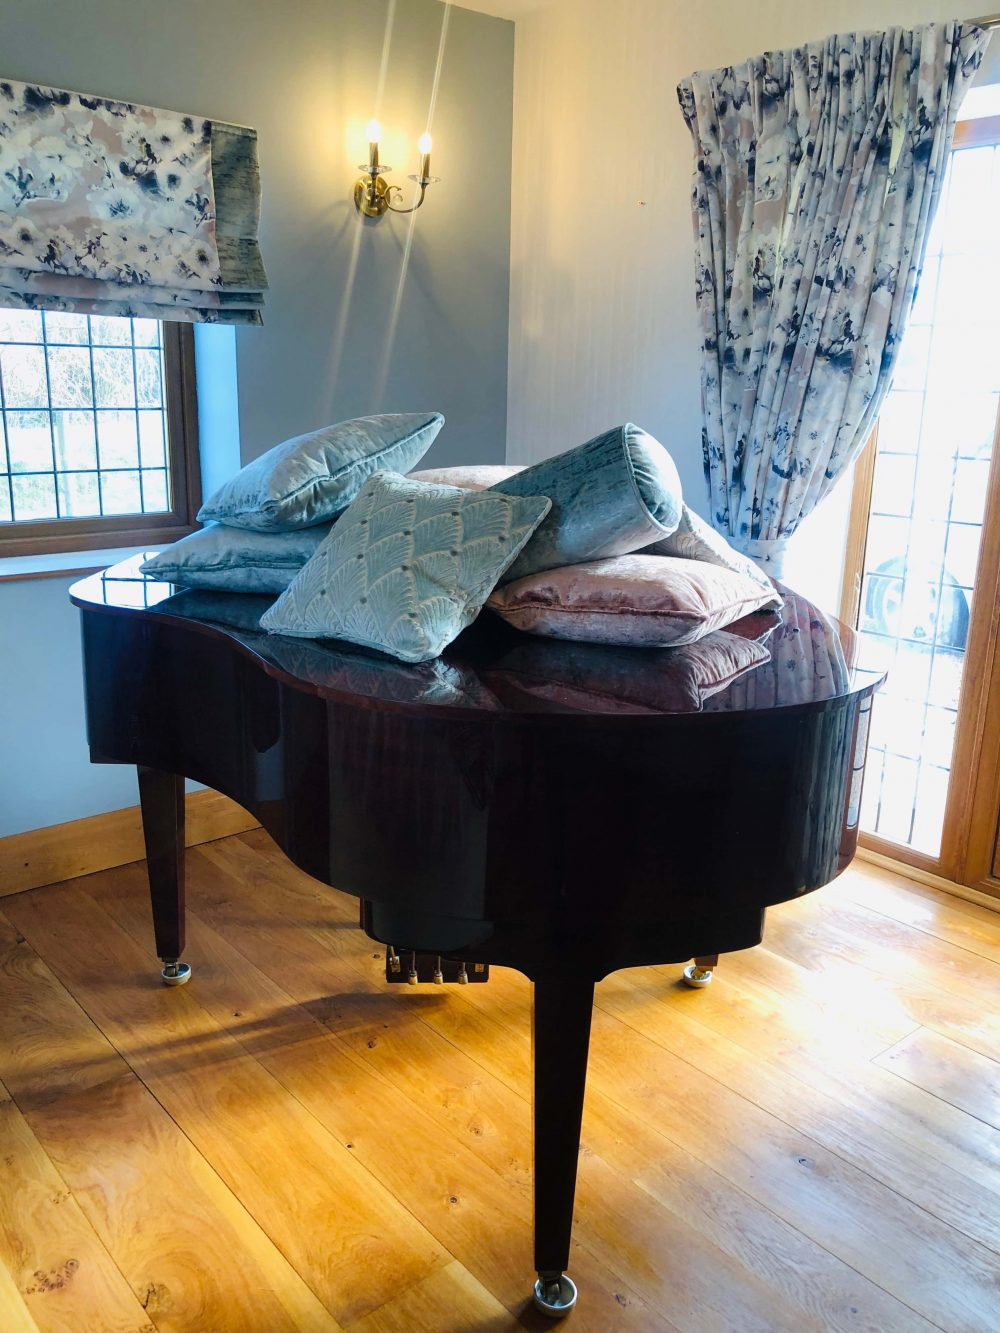 velvet cushions on a piano